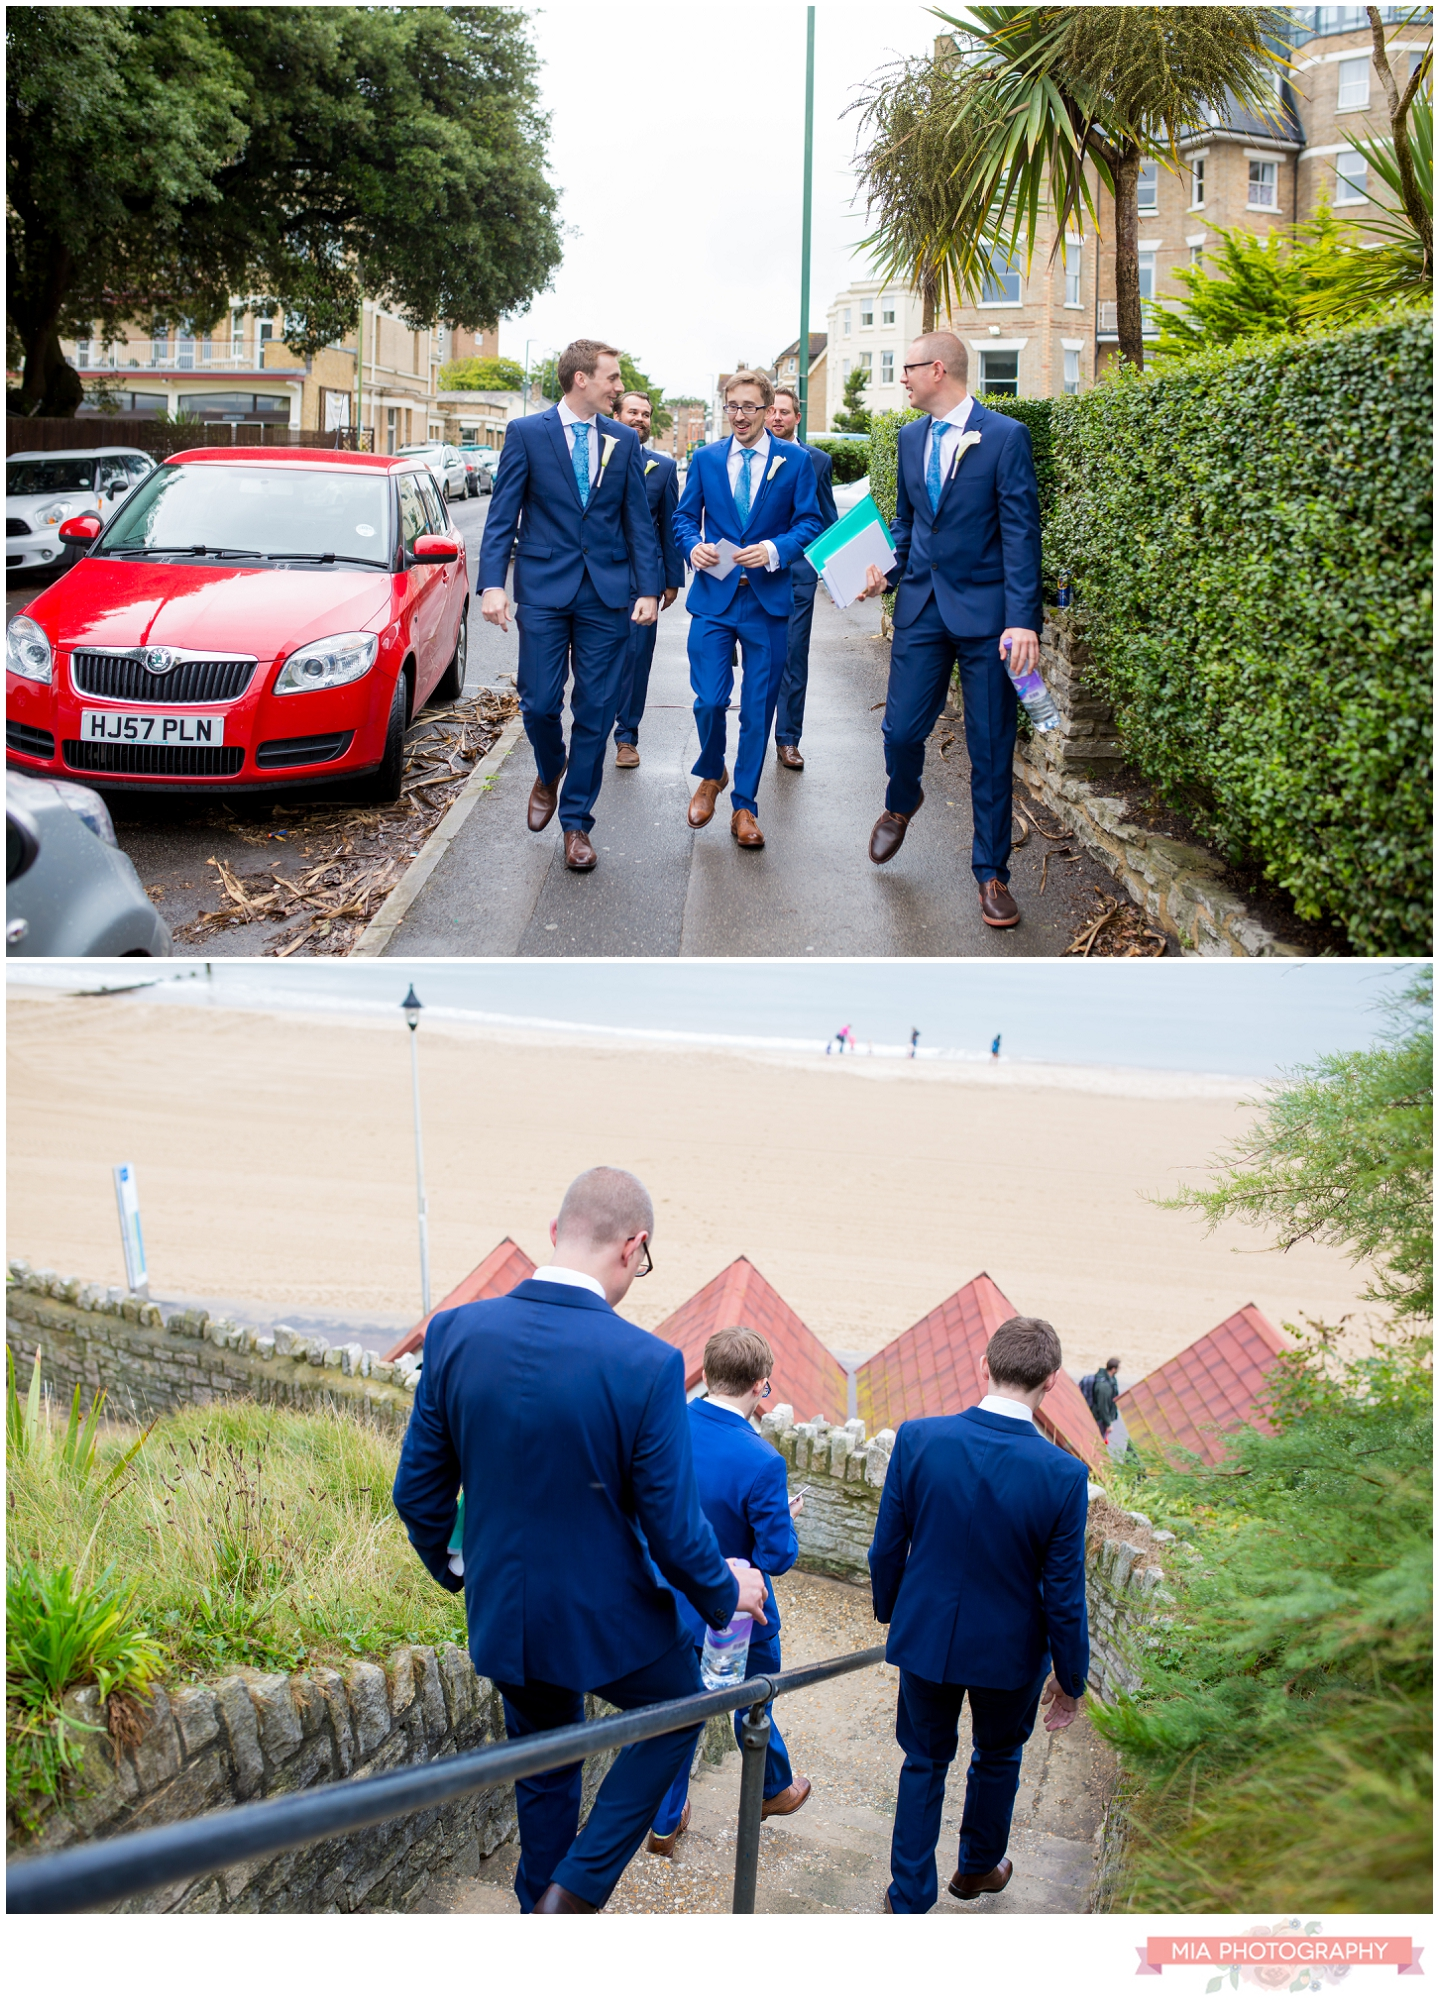 Beach-weddings-Bournemouth-Wedding-008